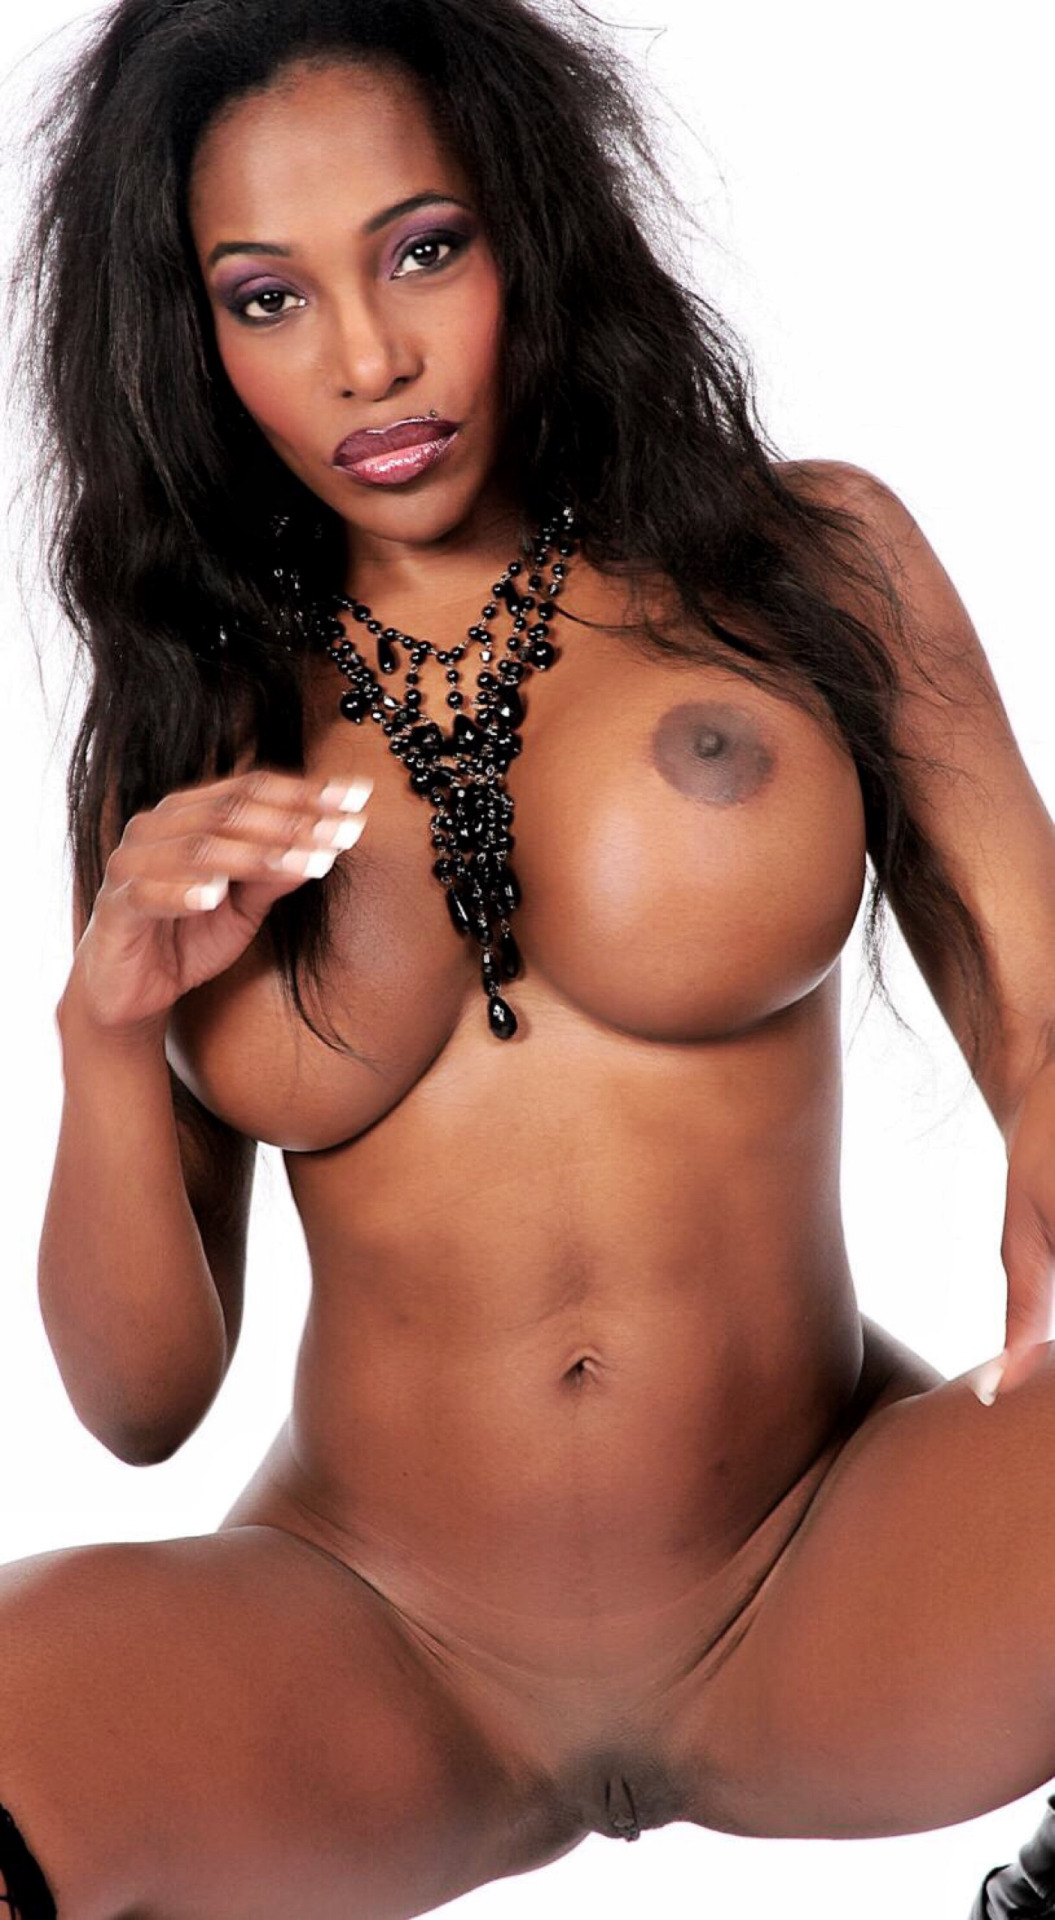 Black girls with big fake boobs